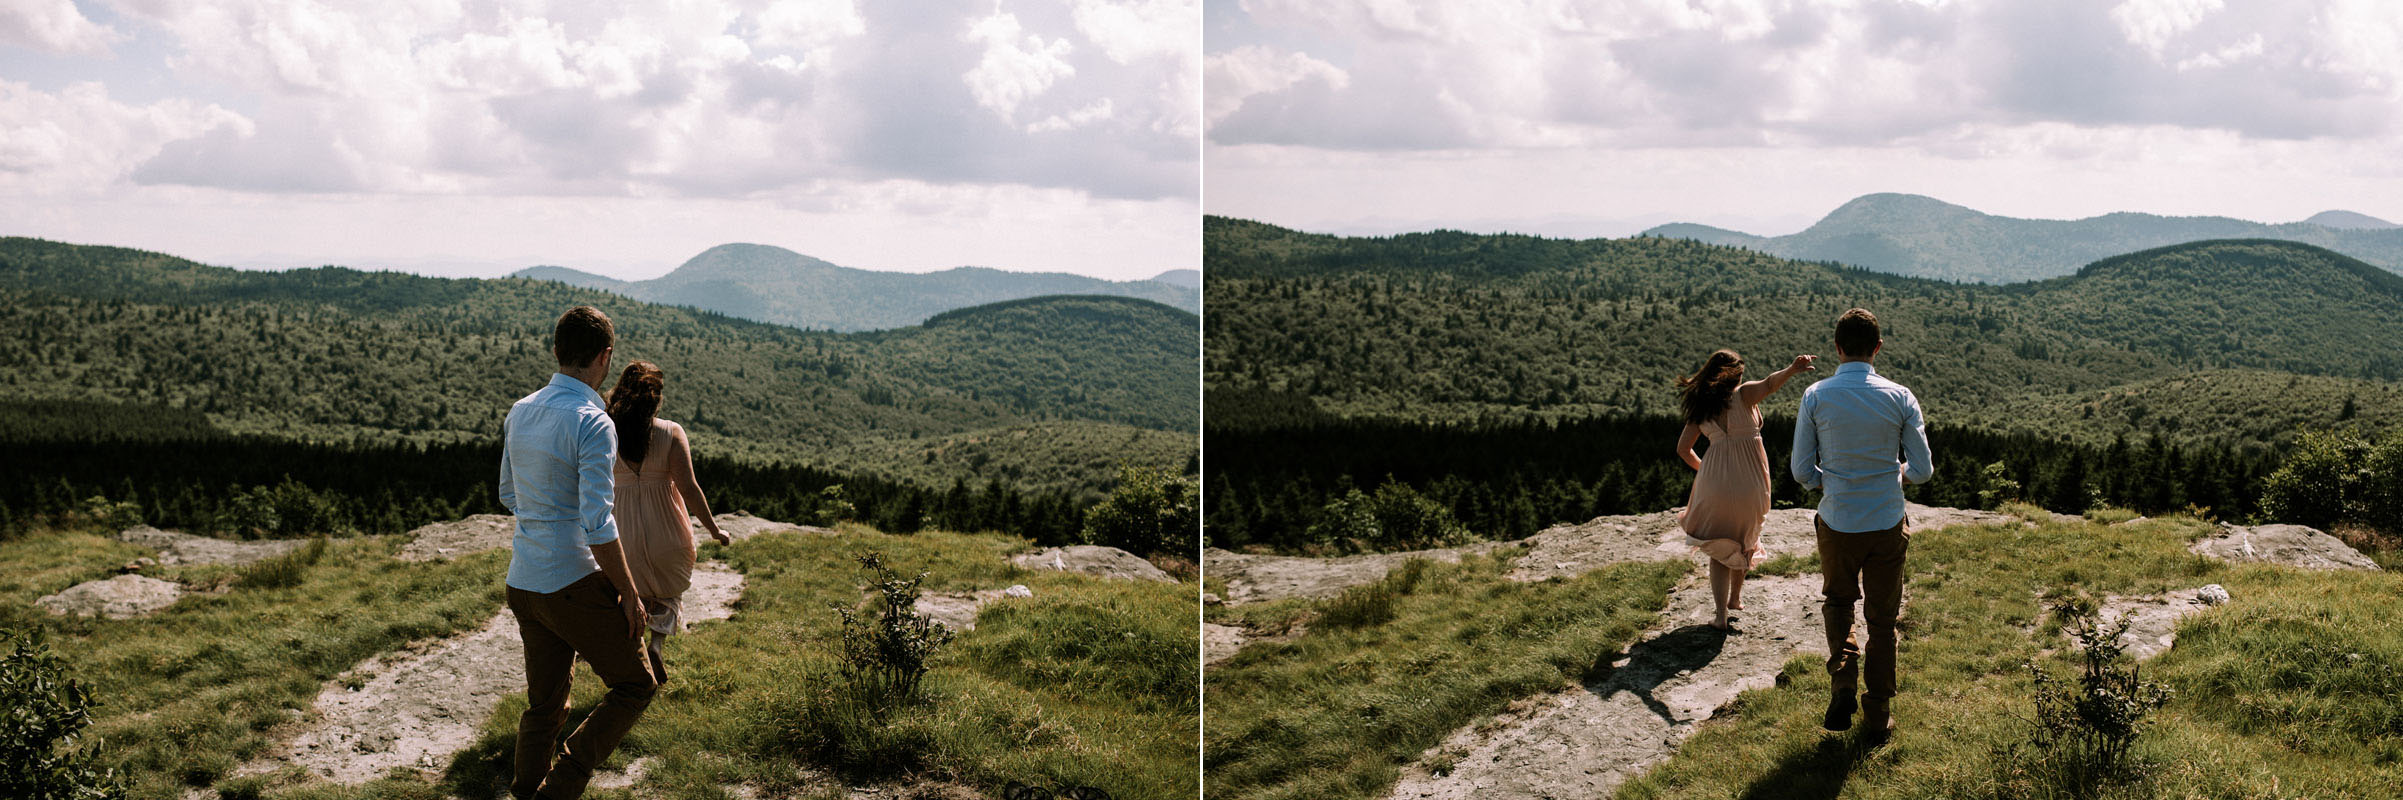 Black-Balsam-Knob-Adventure-Session-Asheville-Wedding-Photographers (31).jpg